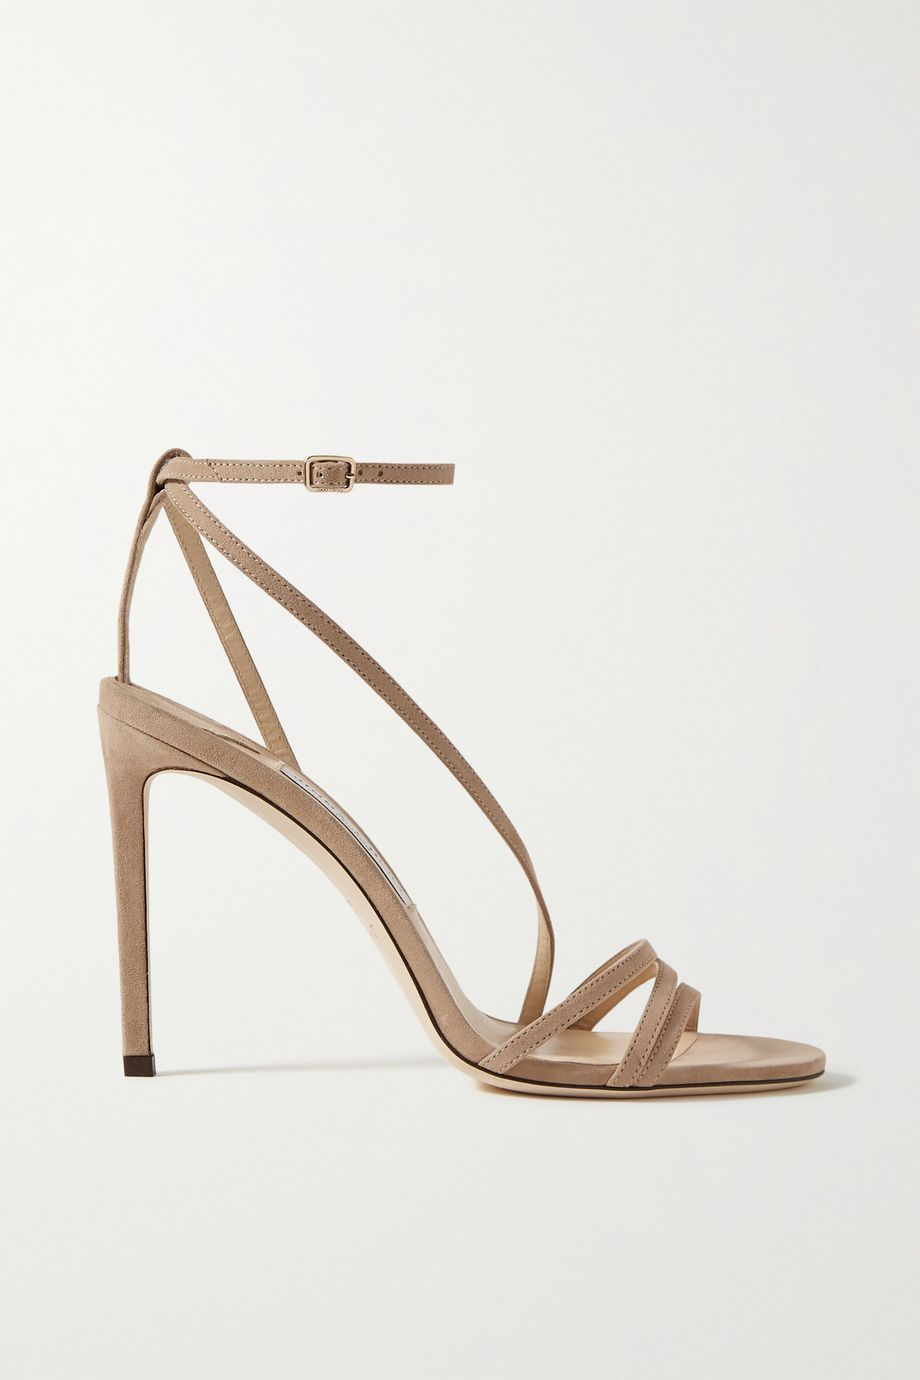 Jimmy Choo Tesca 100 suede sandals